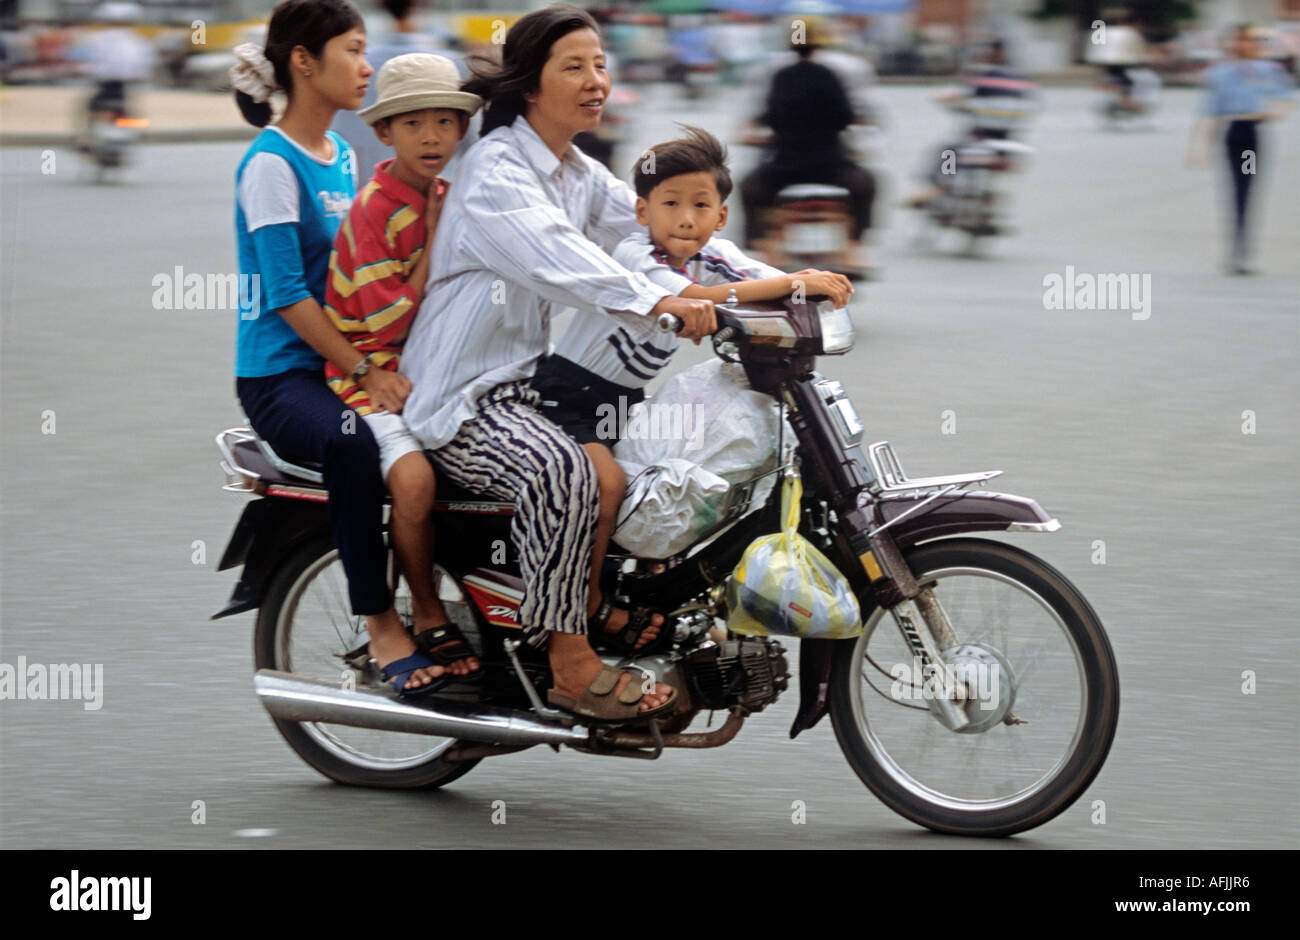 motorcycle family photo  Four Family On Scooter Motorcycle Stock Photos